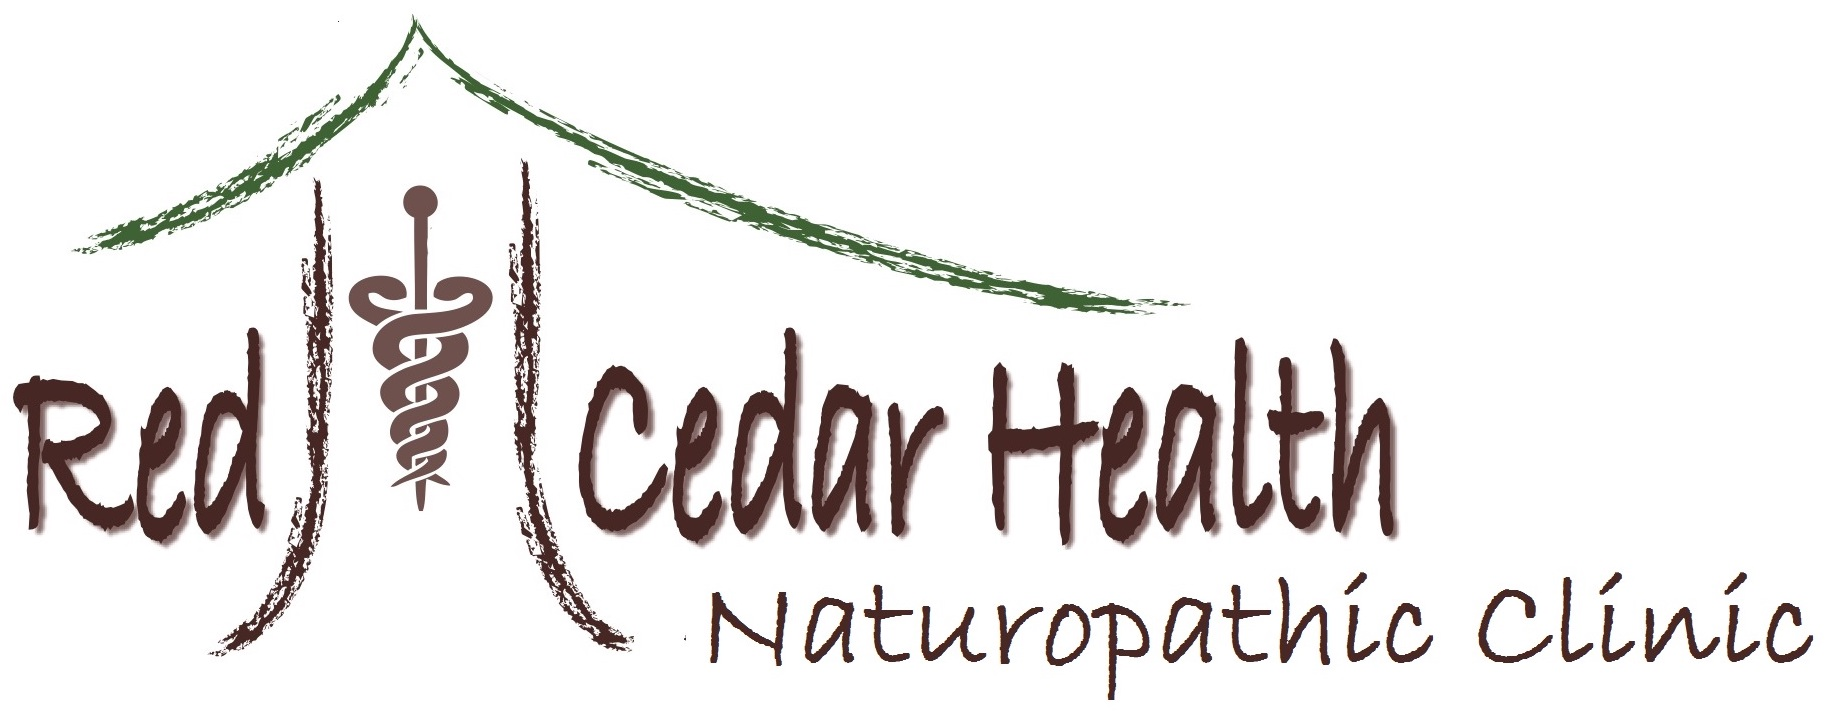 To Book an Appointment at  Red Cedar Health Naturopathic Clinic , please call  604-746-3140 .